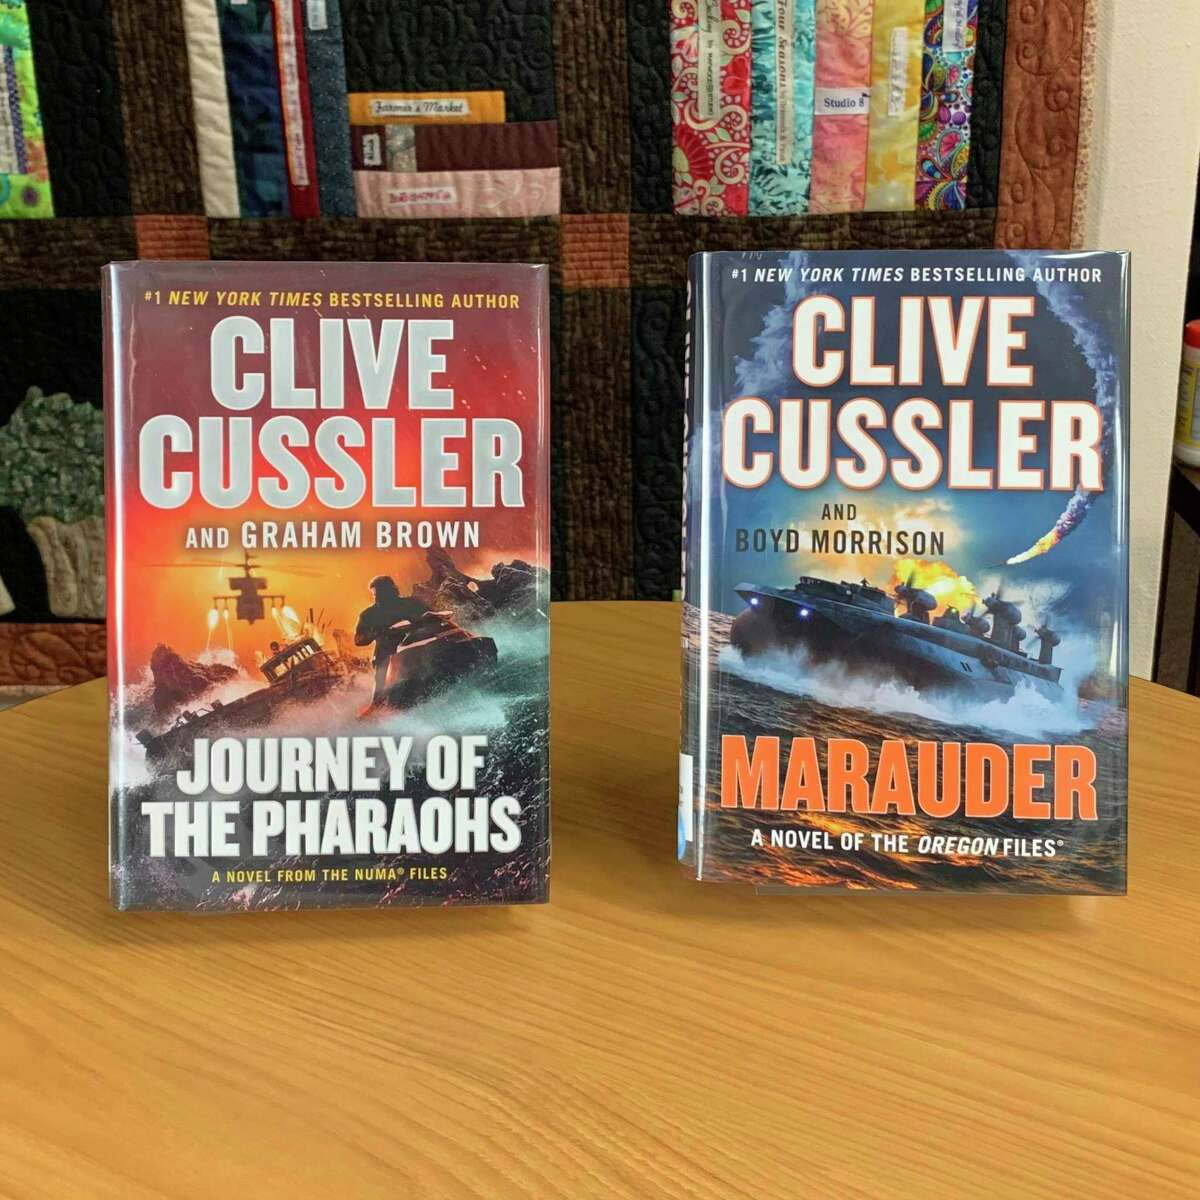 """Clive Cussler wrote American adventure novels and was frequently listed on the New York Times Best Seller list. His latest novels are """"Journey of the Pharaohs"""" in which the National Underwater and Marine Agency teams up with MI5 agents to search for lost Egyptian treasure to keep it from a cartel of thieves and gunrunners. (Courtesy photo)"""